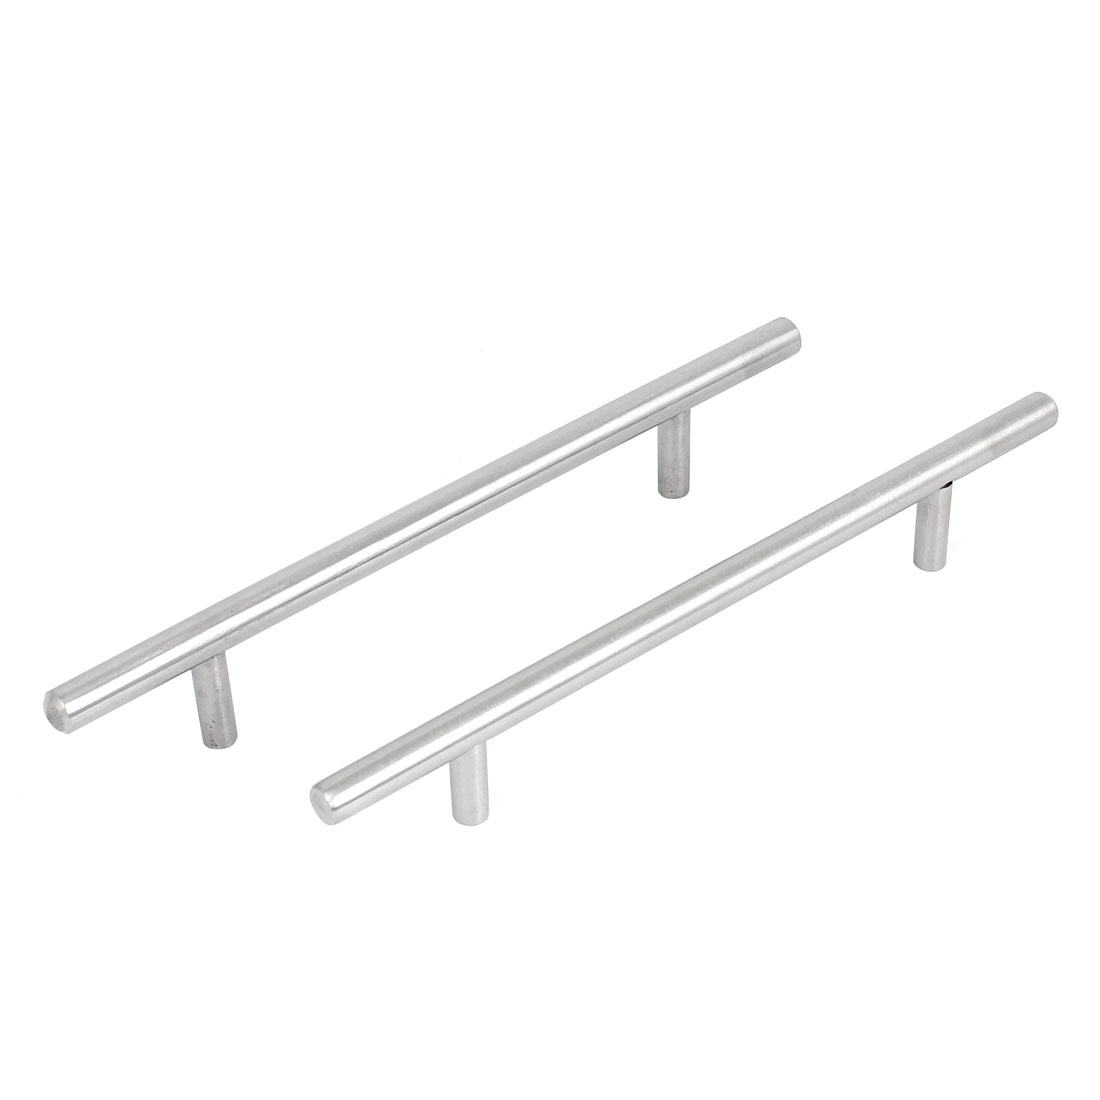 2Pcs Iron Cabinet Drawer Cupboard Door Pull Handles Grip 195mm Length